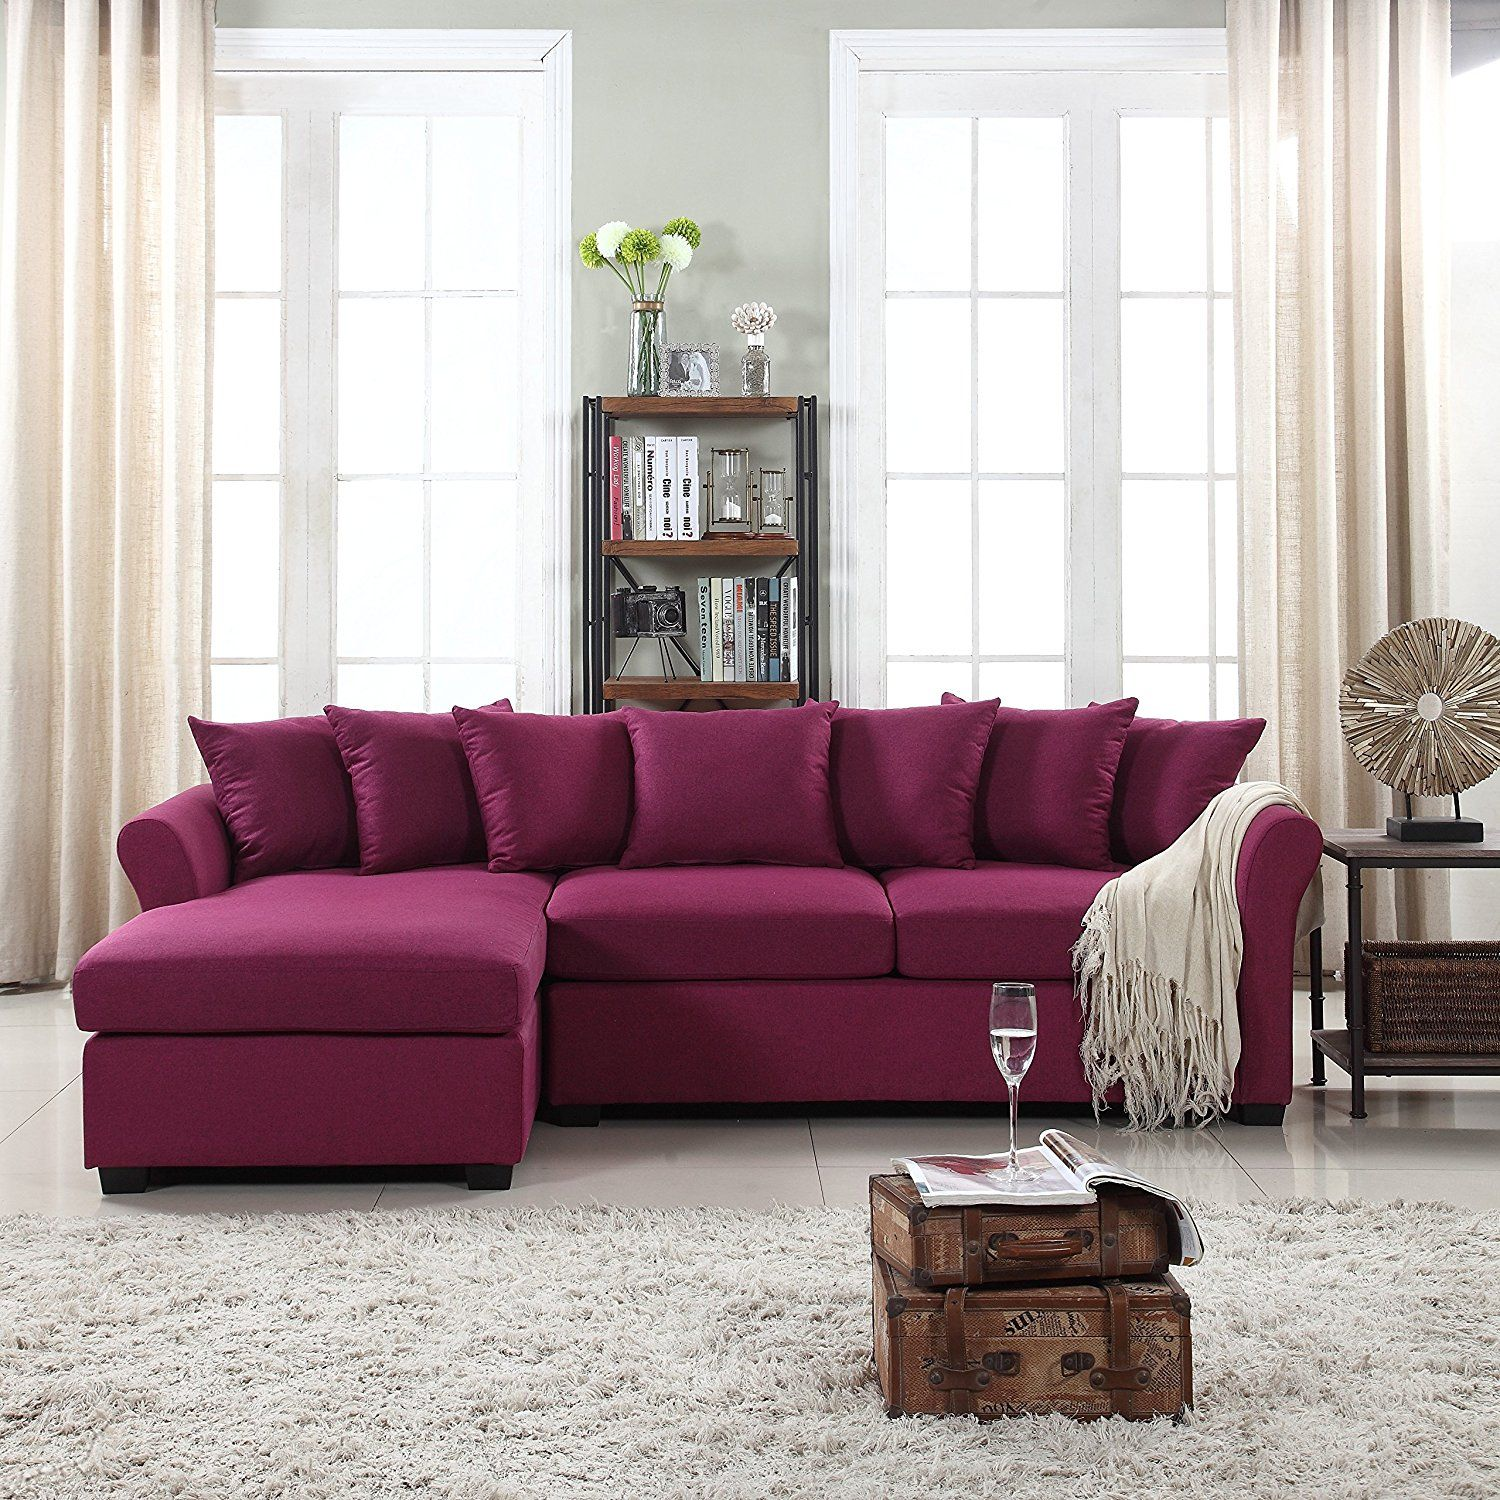 Amazon.com: Modern Large Linen Fabric Sectional Sofa, L Shape Couch With